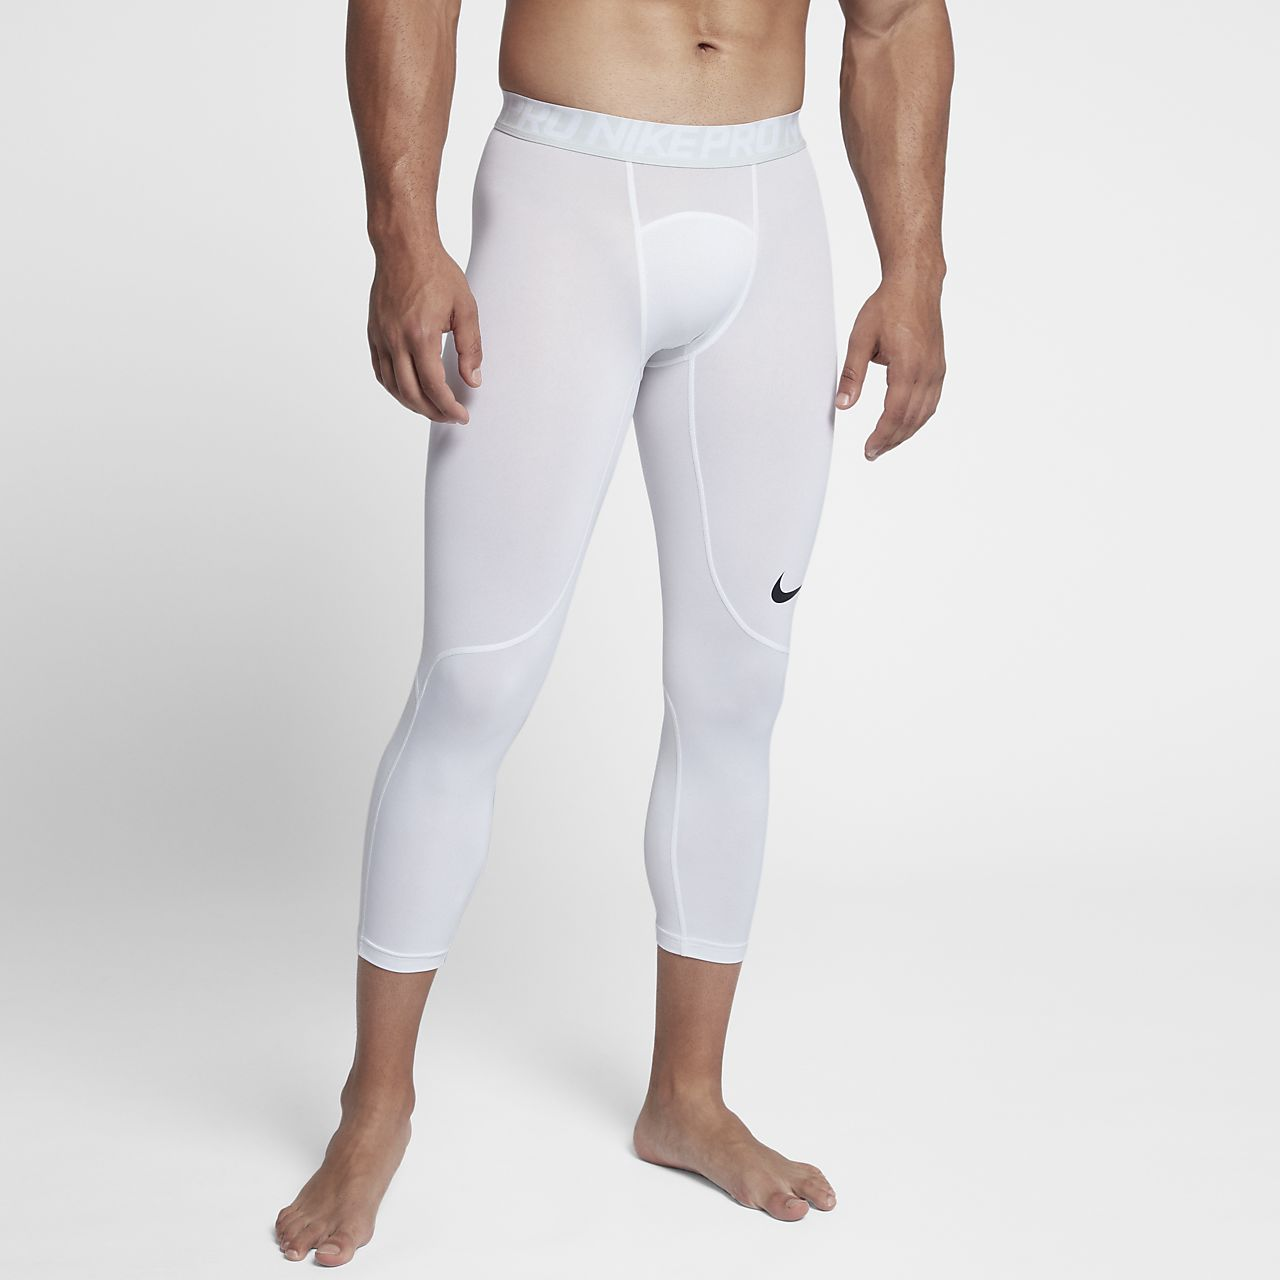 762d3d719b Nike Pro Men's 3/4 Training Tights. Nike.com